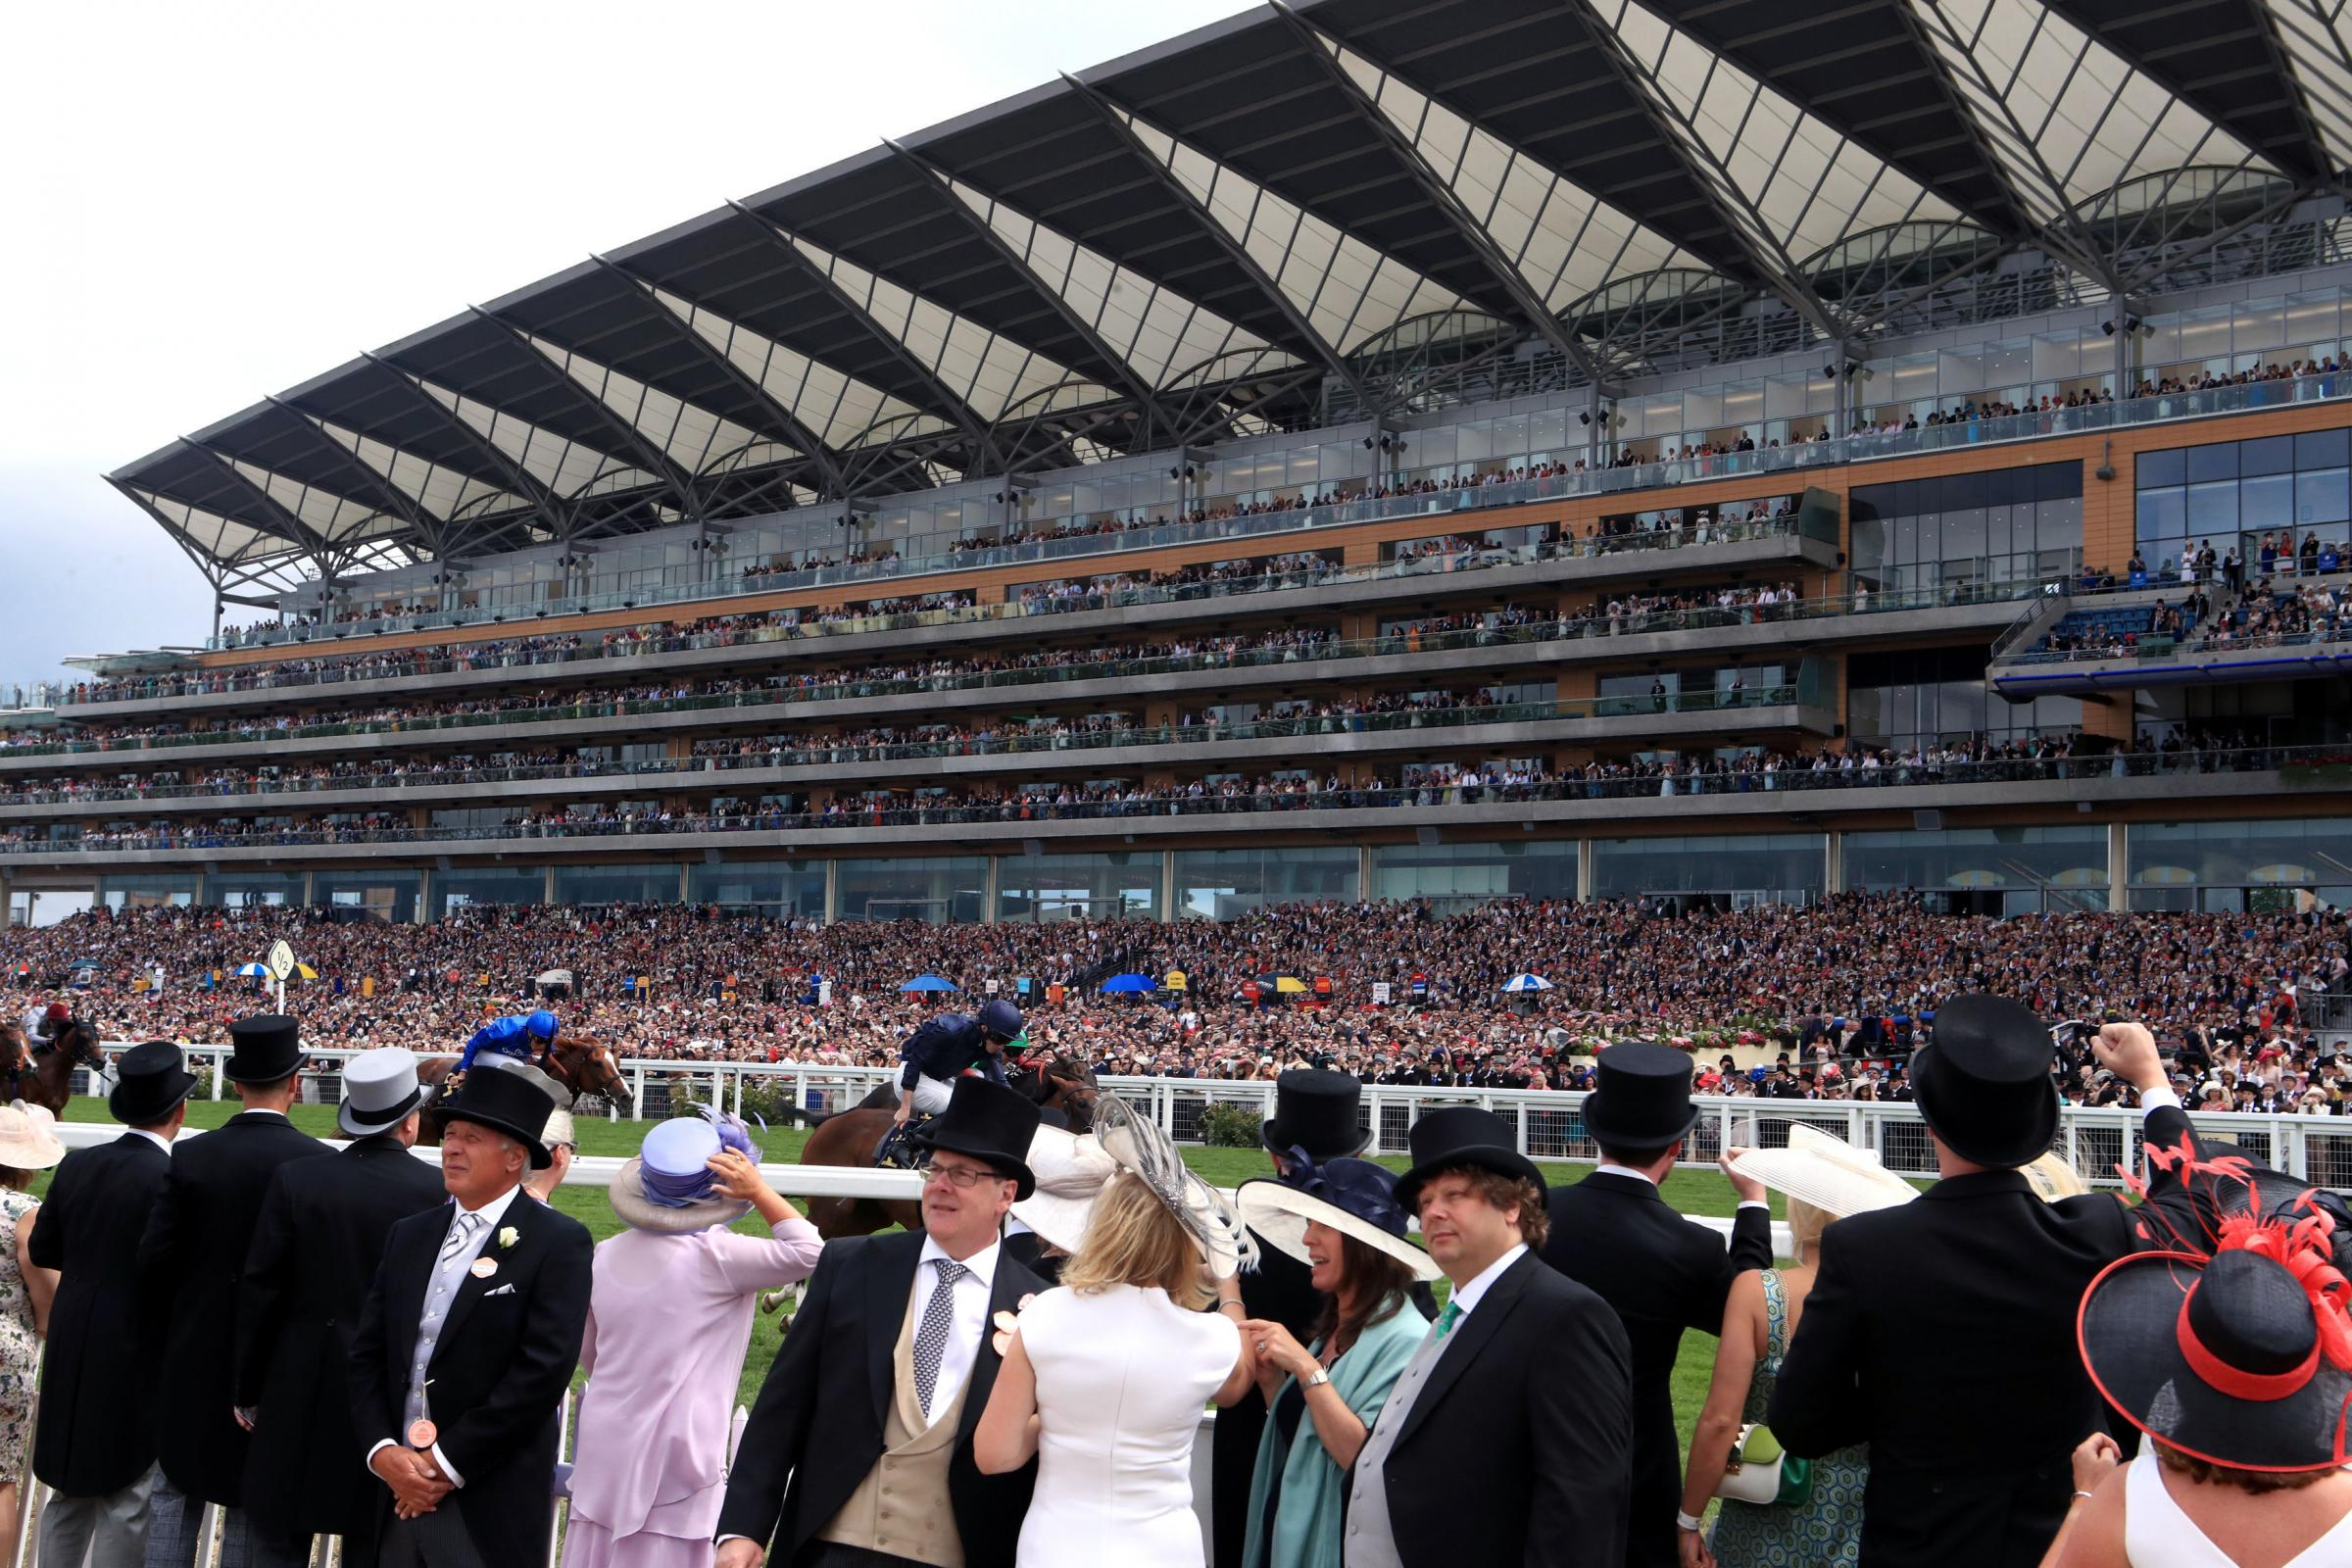 Royal Ascot punters will face breathalysers on turnstiles